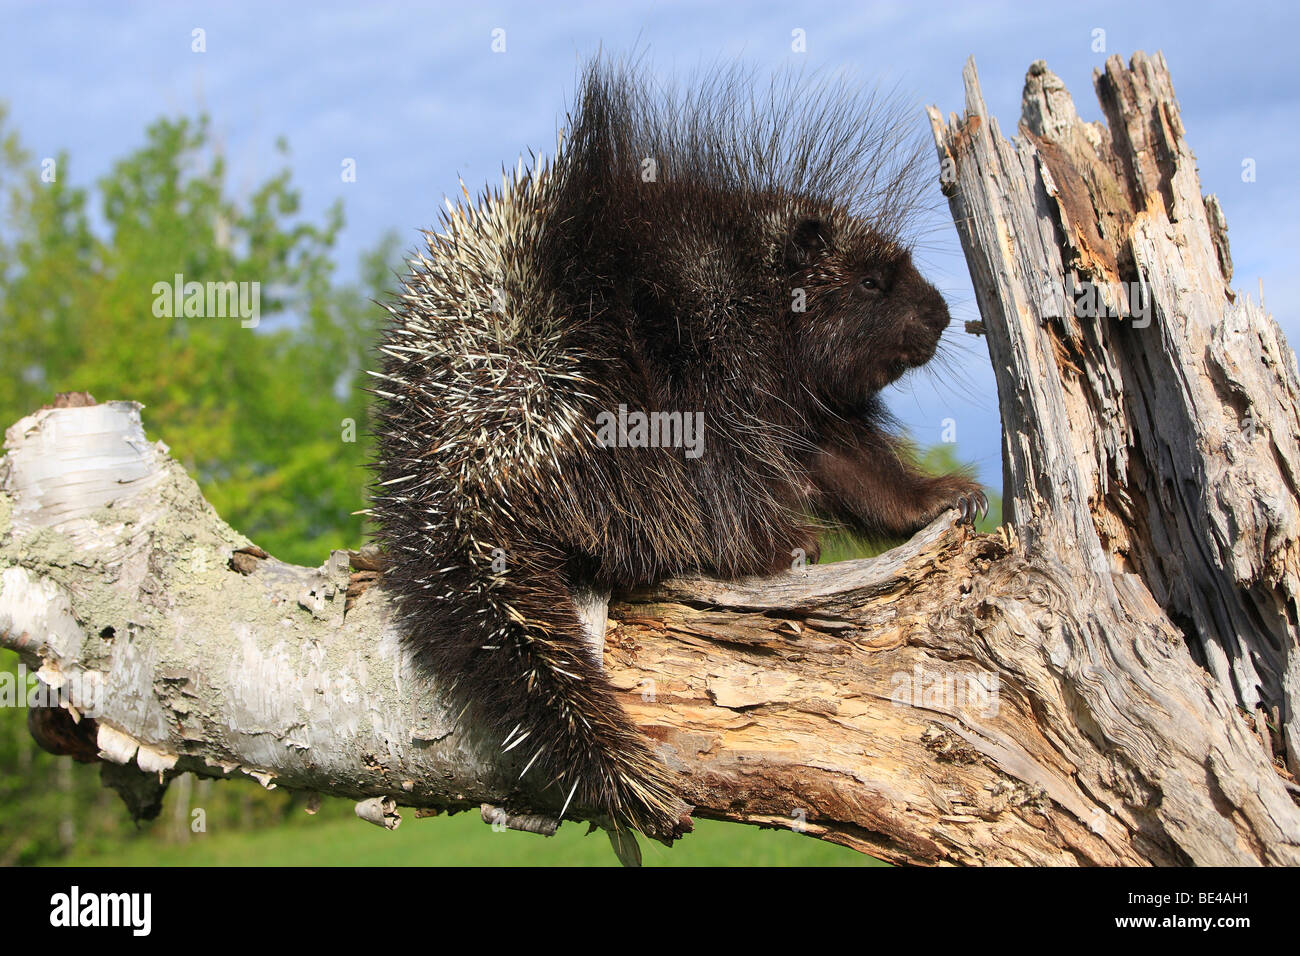 New World Porcupine, North American Porcupine (Erethizon dorsatum) on a dead tree. - Stock Image